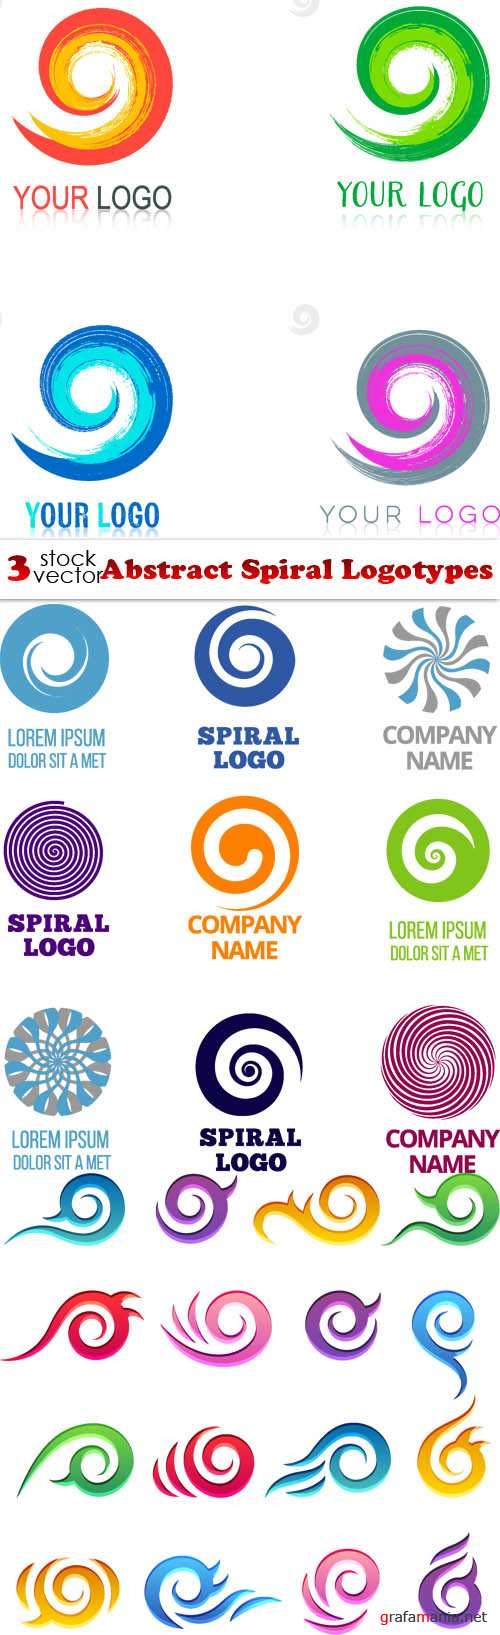 Vectors - Abstract Spiral Logotypes